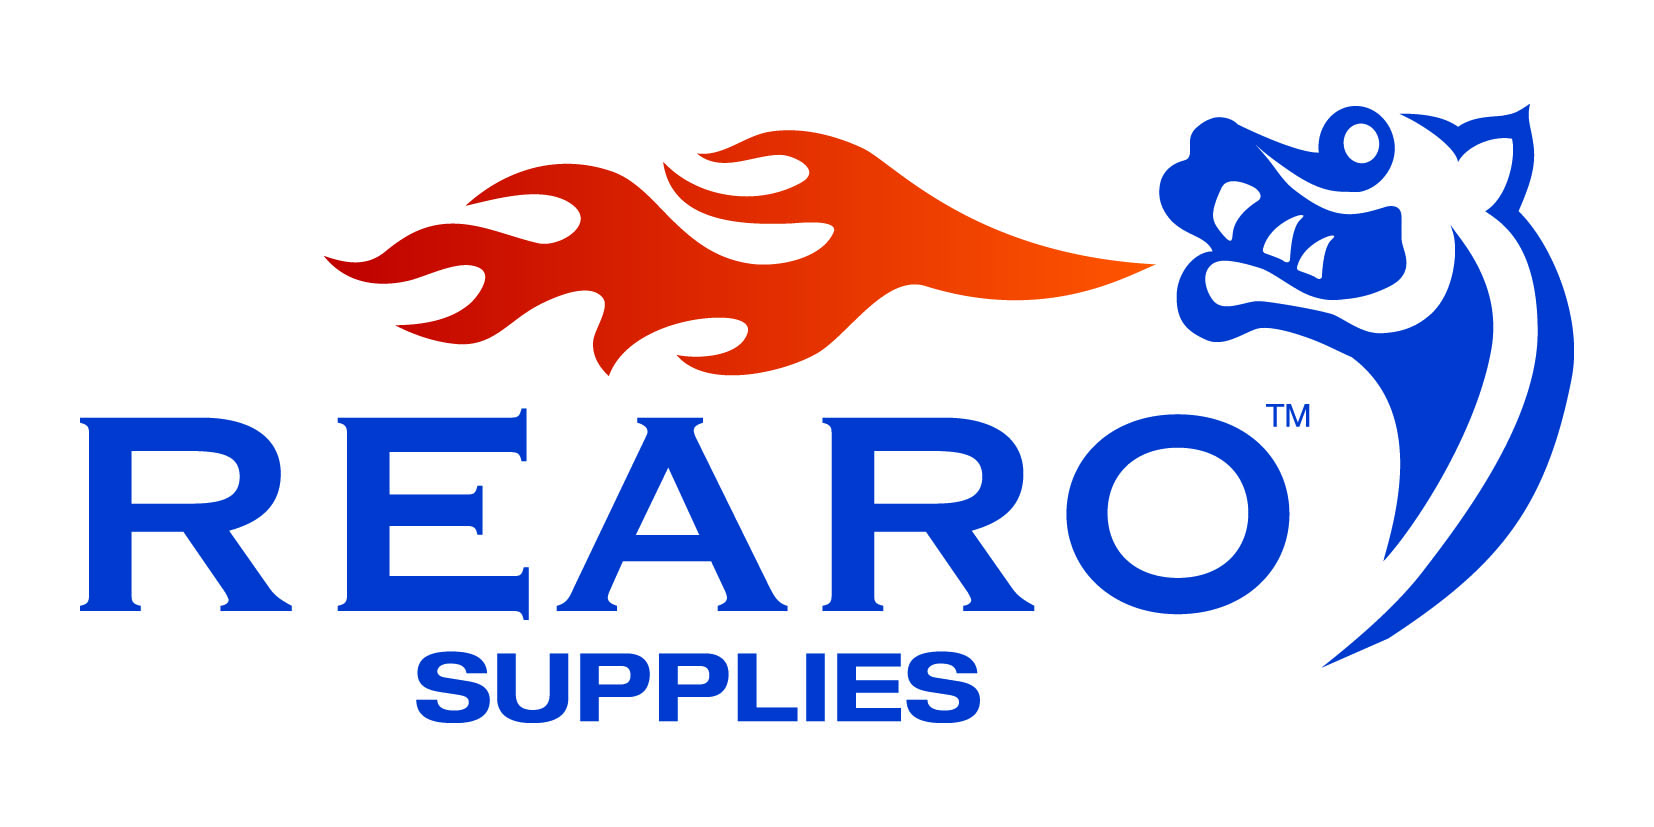 Our services - Shetland gas supplier - Rearo Supplies